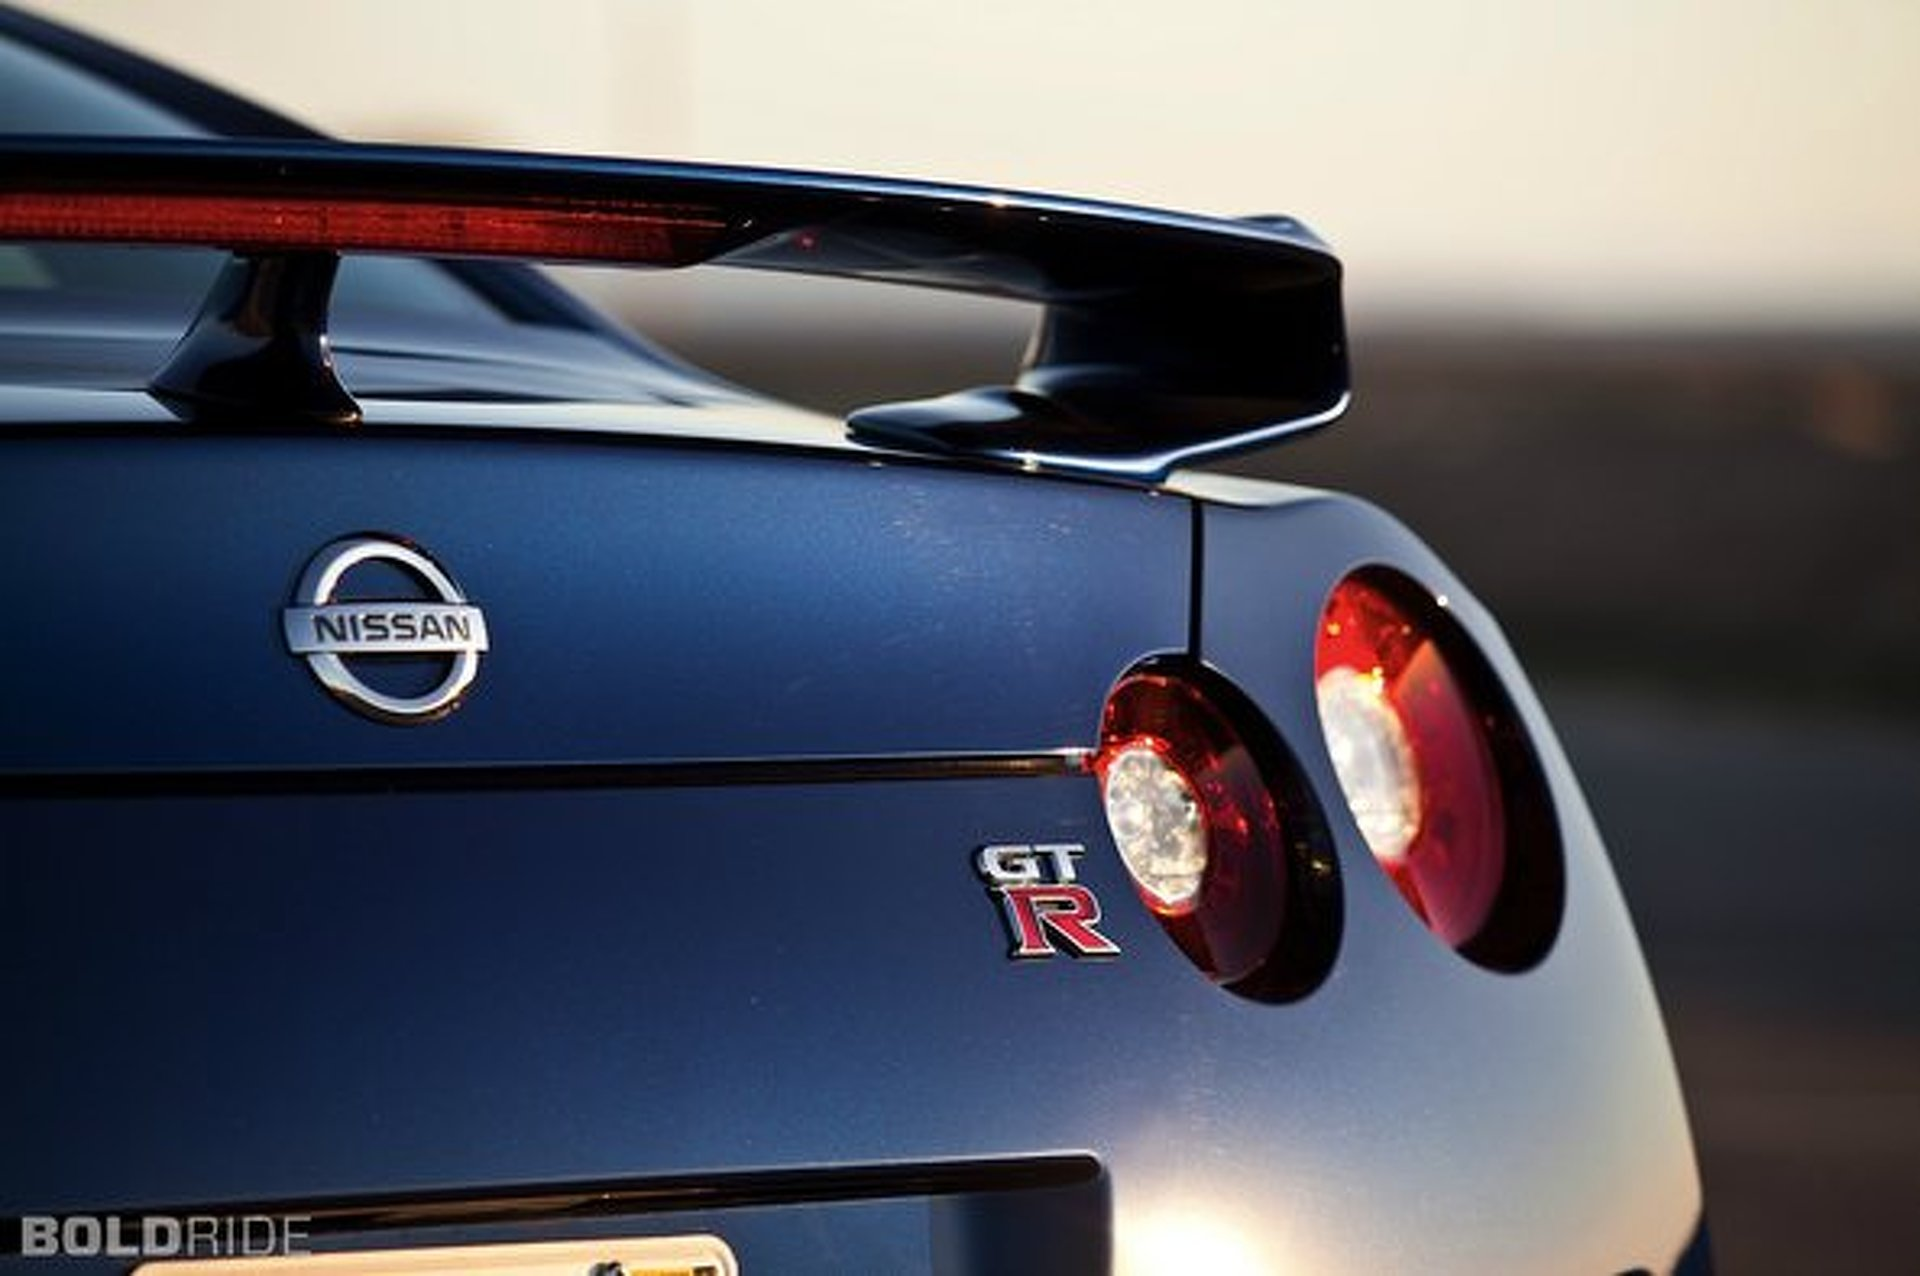 Nissan Wants Old Women to Buy Their New GT-R